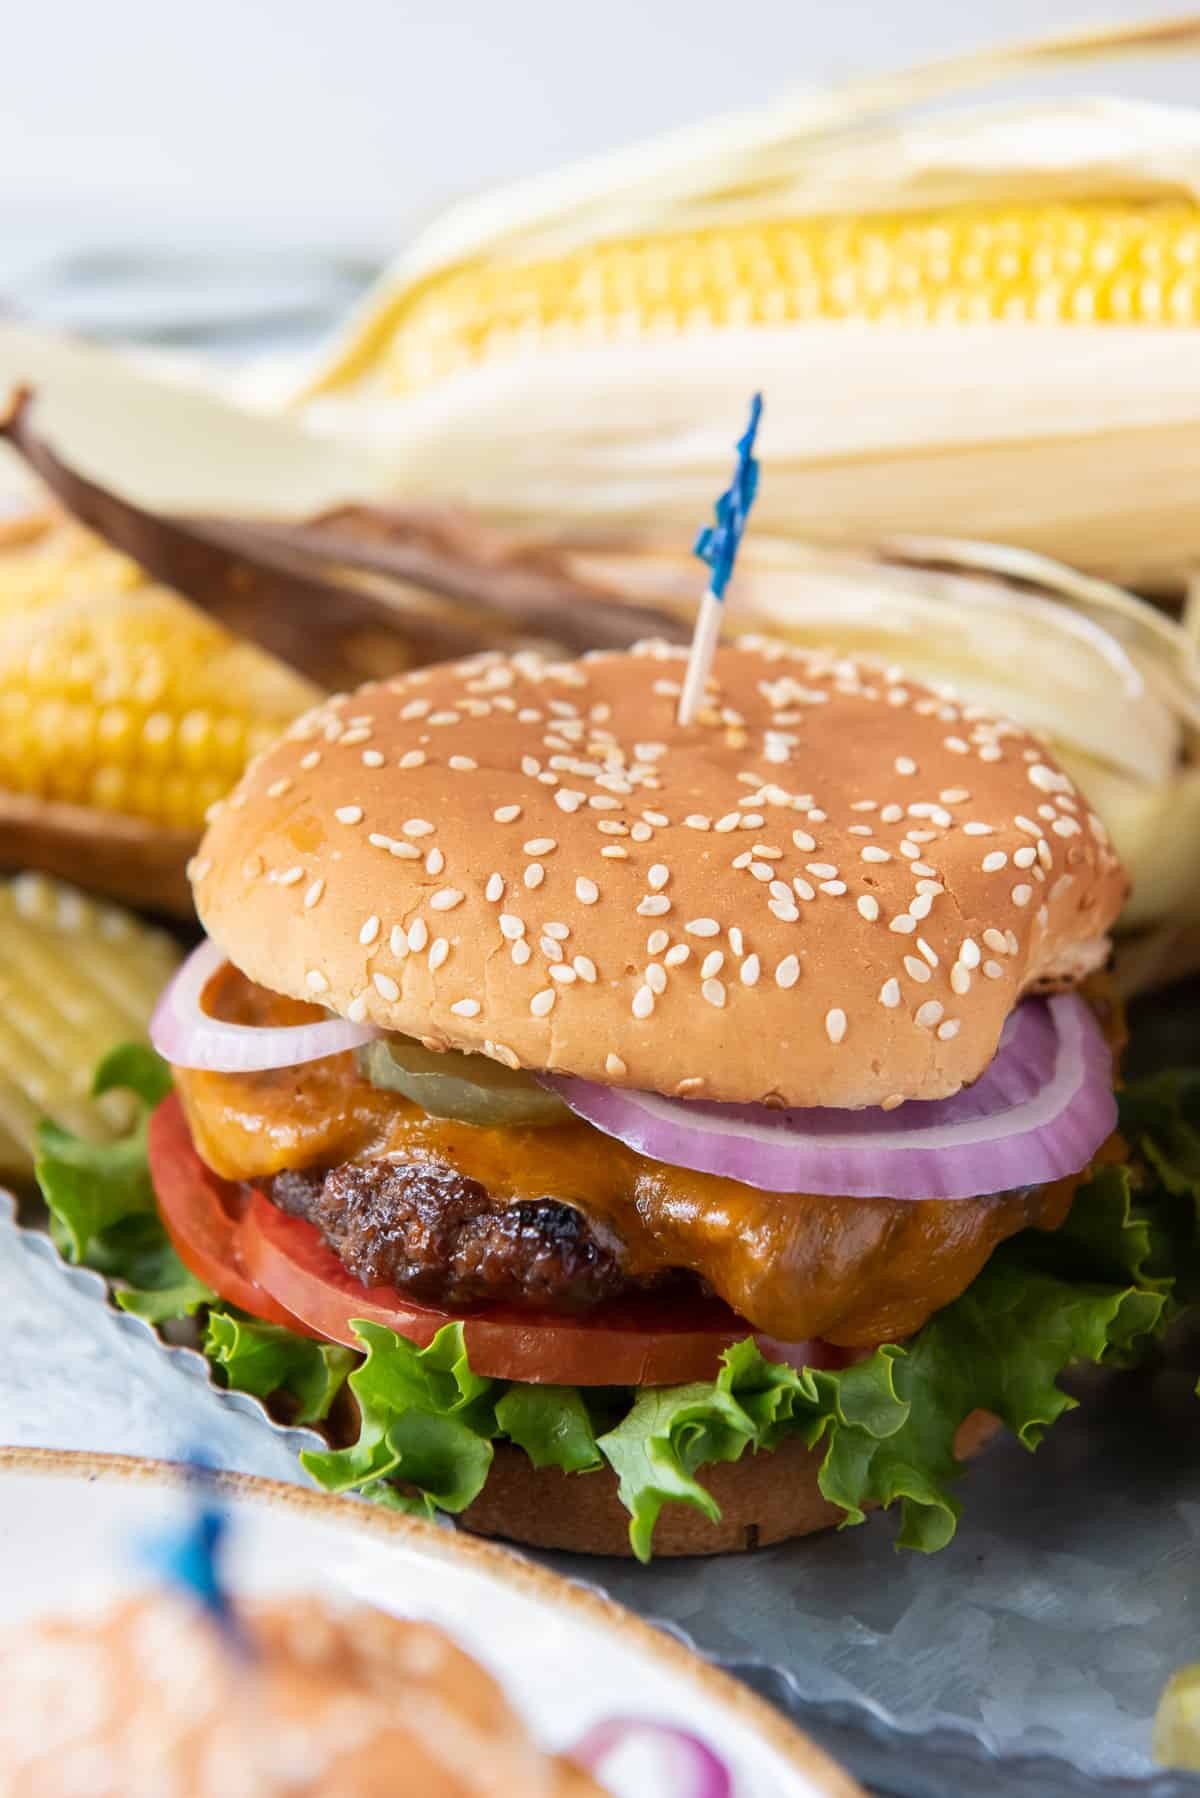 A cheeseburger with onions, tomatoes and lettuce on a sesame seed bun.